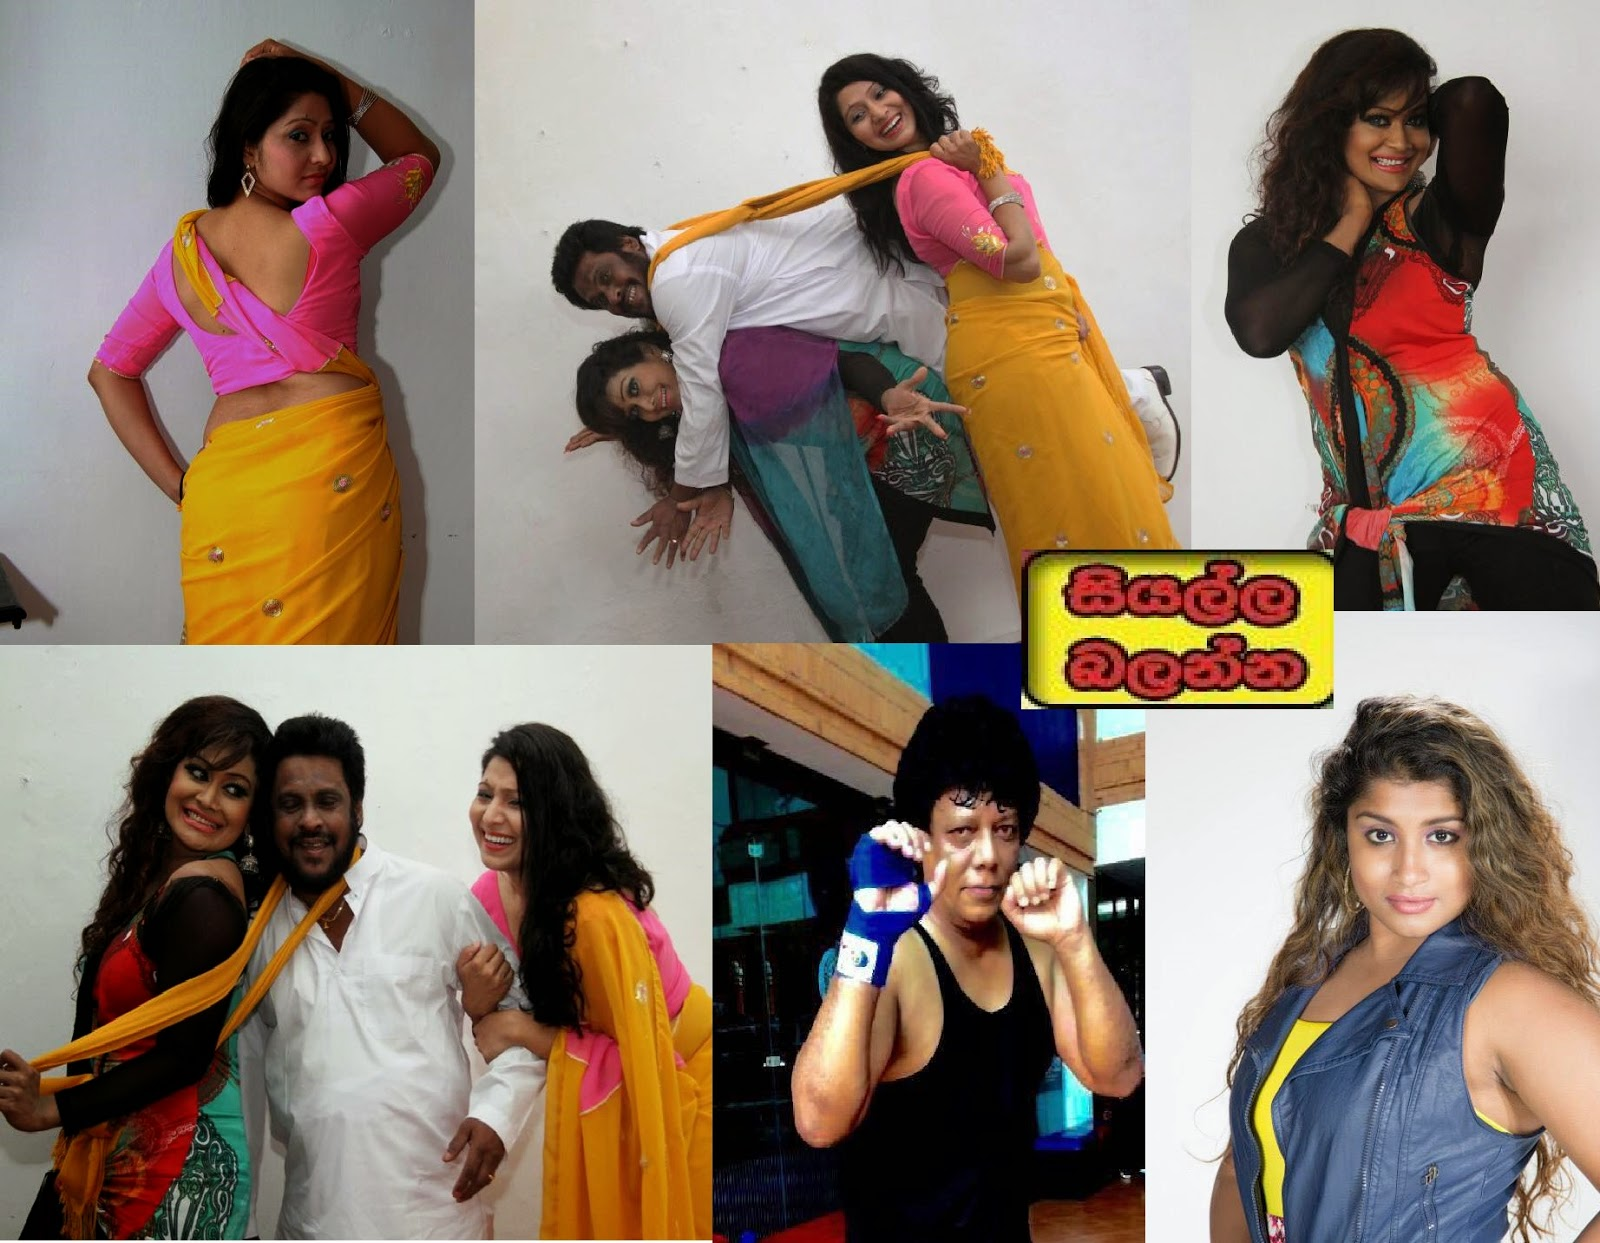 http://picture.gossiplankahotnews.com/2014/11/singa-machan-charlie-new-comedy-movie.html